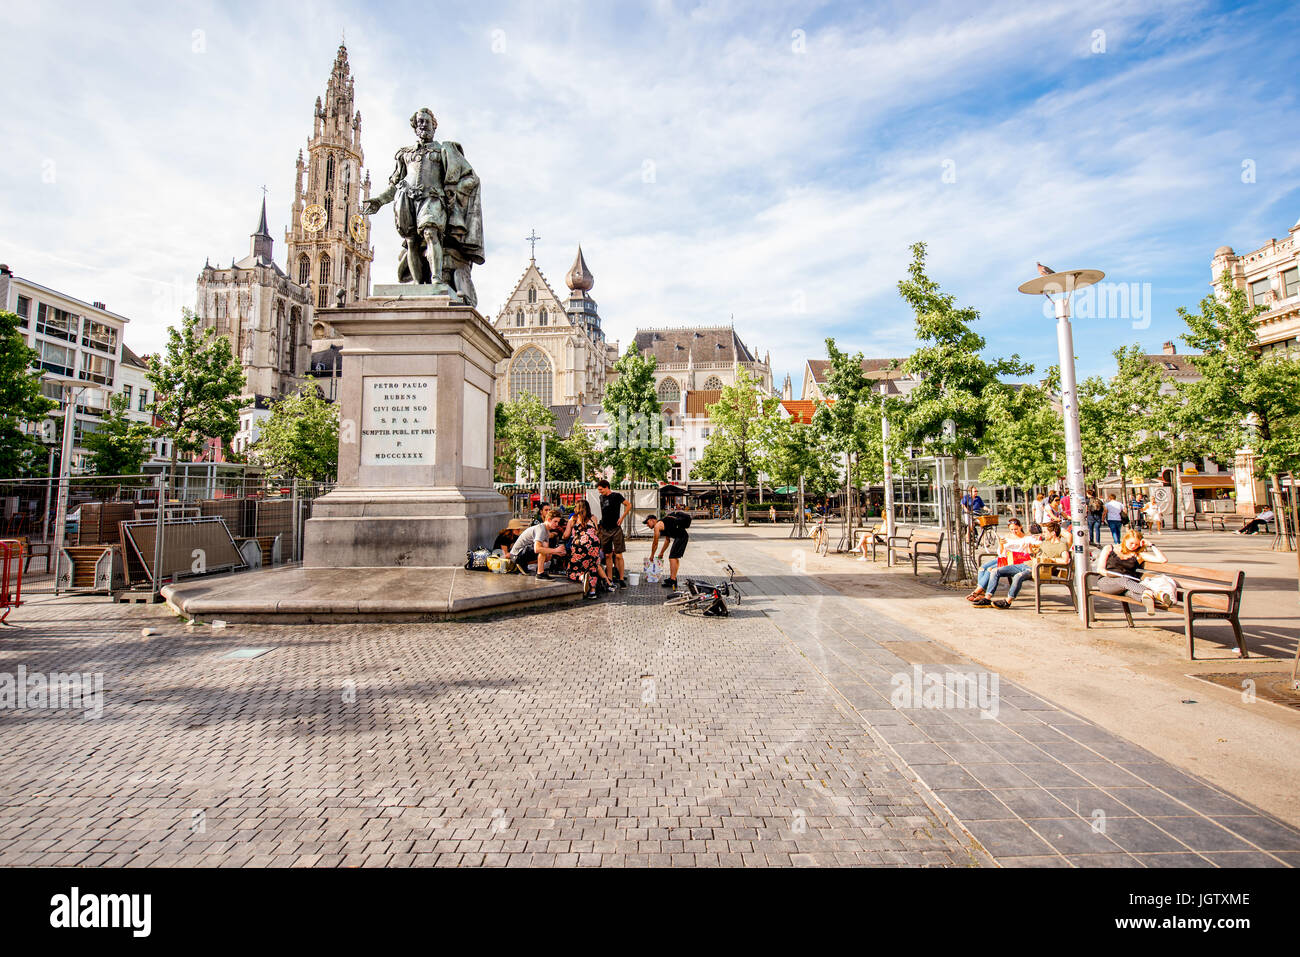 ANTWERPEN, BELGIUM - June 02, 2017: View on the crowded Green square with Rubens statue and church in Antwerpen Stock Photo